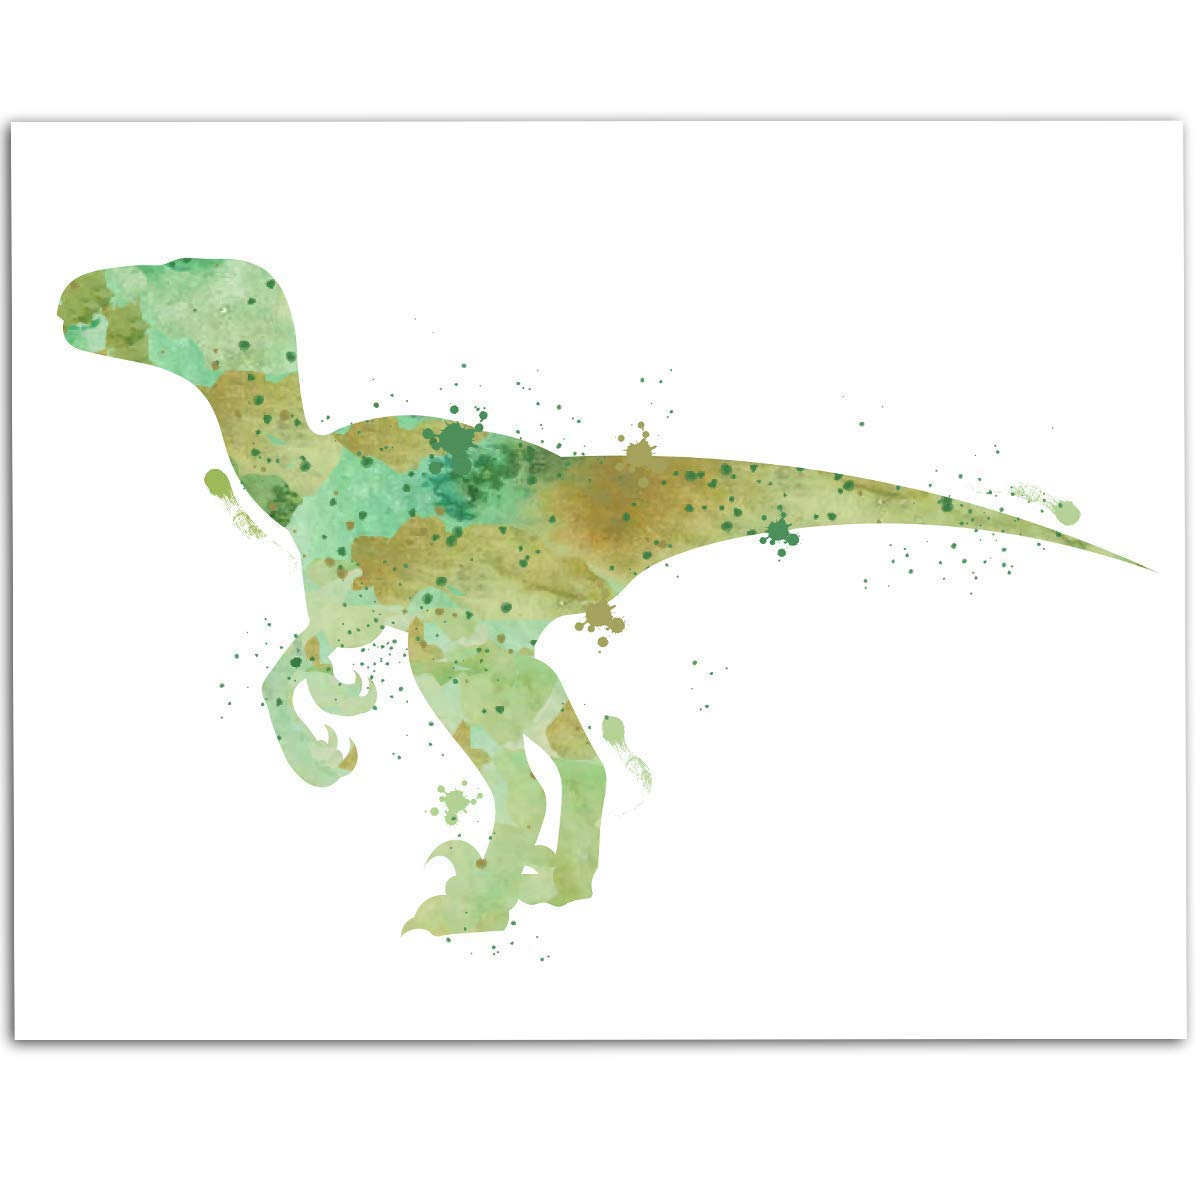 Great Funny Library Decor Also Makes a Great Gift Under $15 11x14 Unframed Art Print Dinosaurs Didnt Read